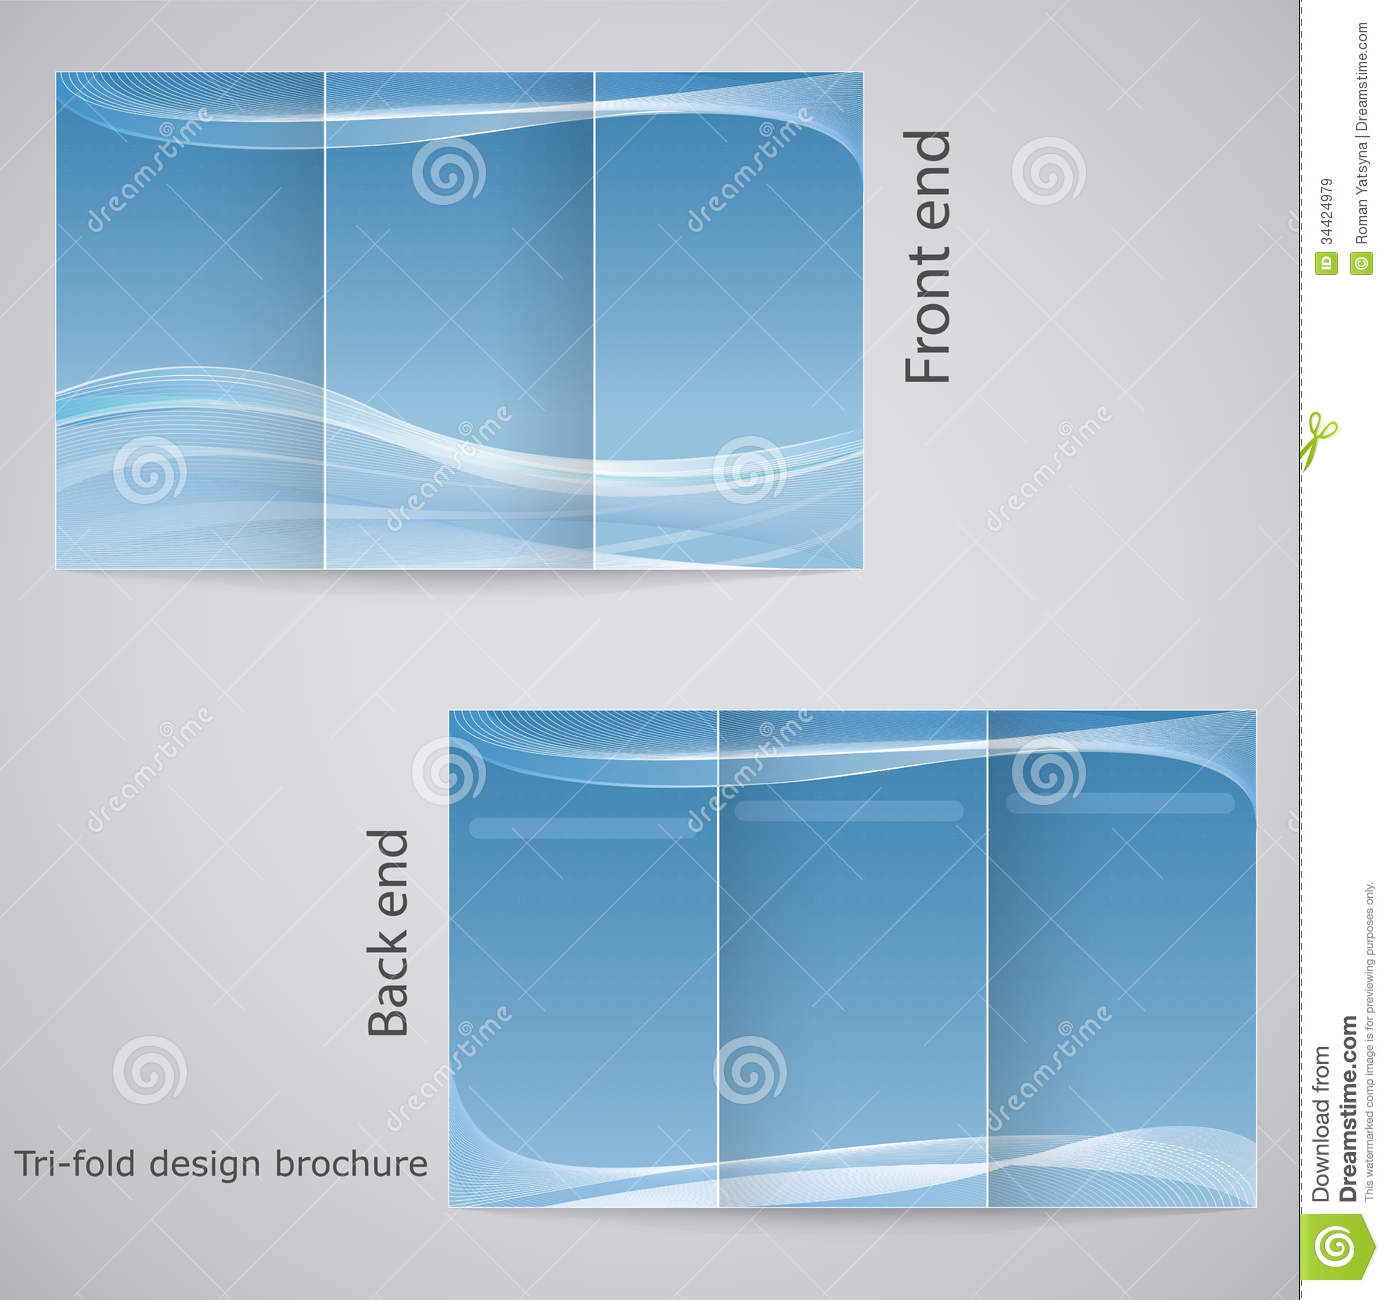 17 tri fold brochure design templates images tri fold for Free blank tri fold brochure templates for microsoft word